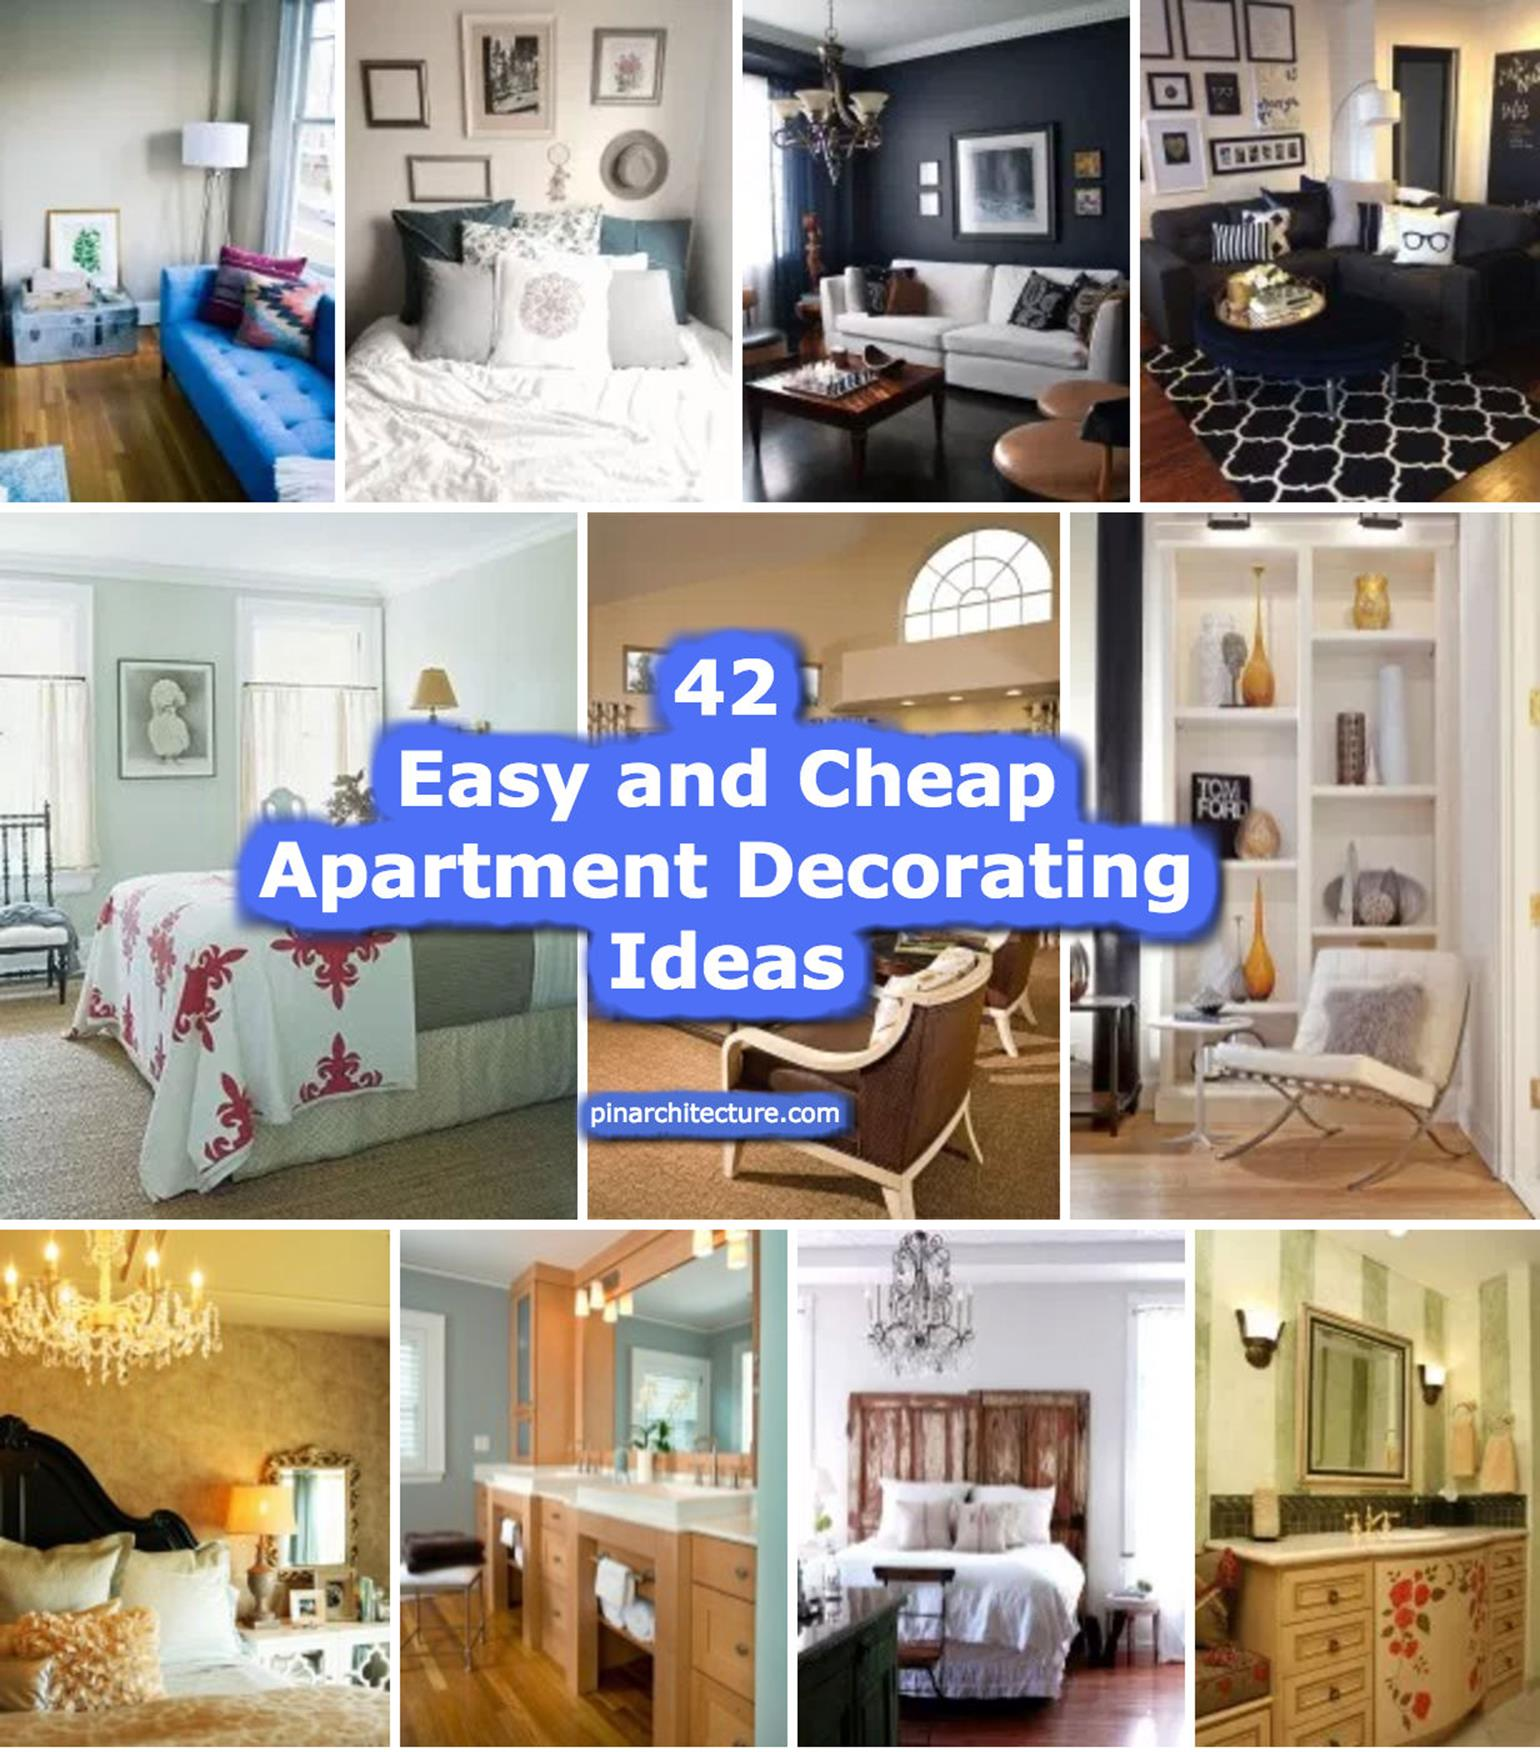 Apartment For Cheap: Cheap Apartment Decorating Ideas 4